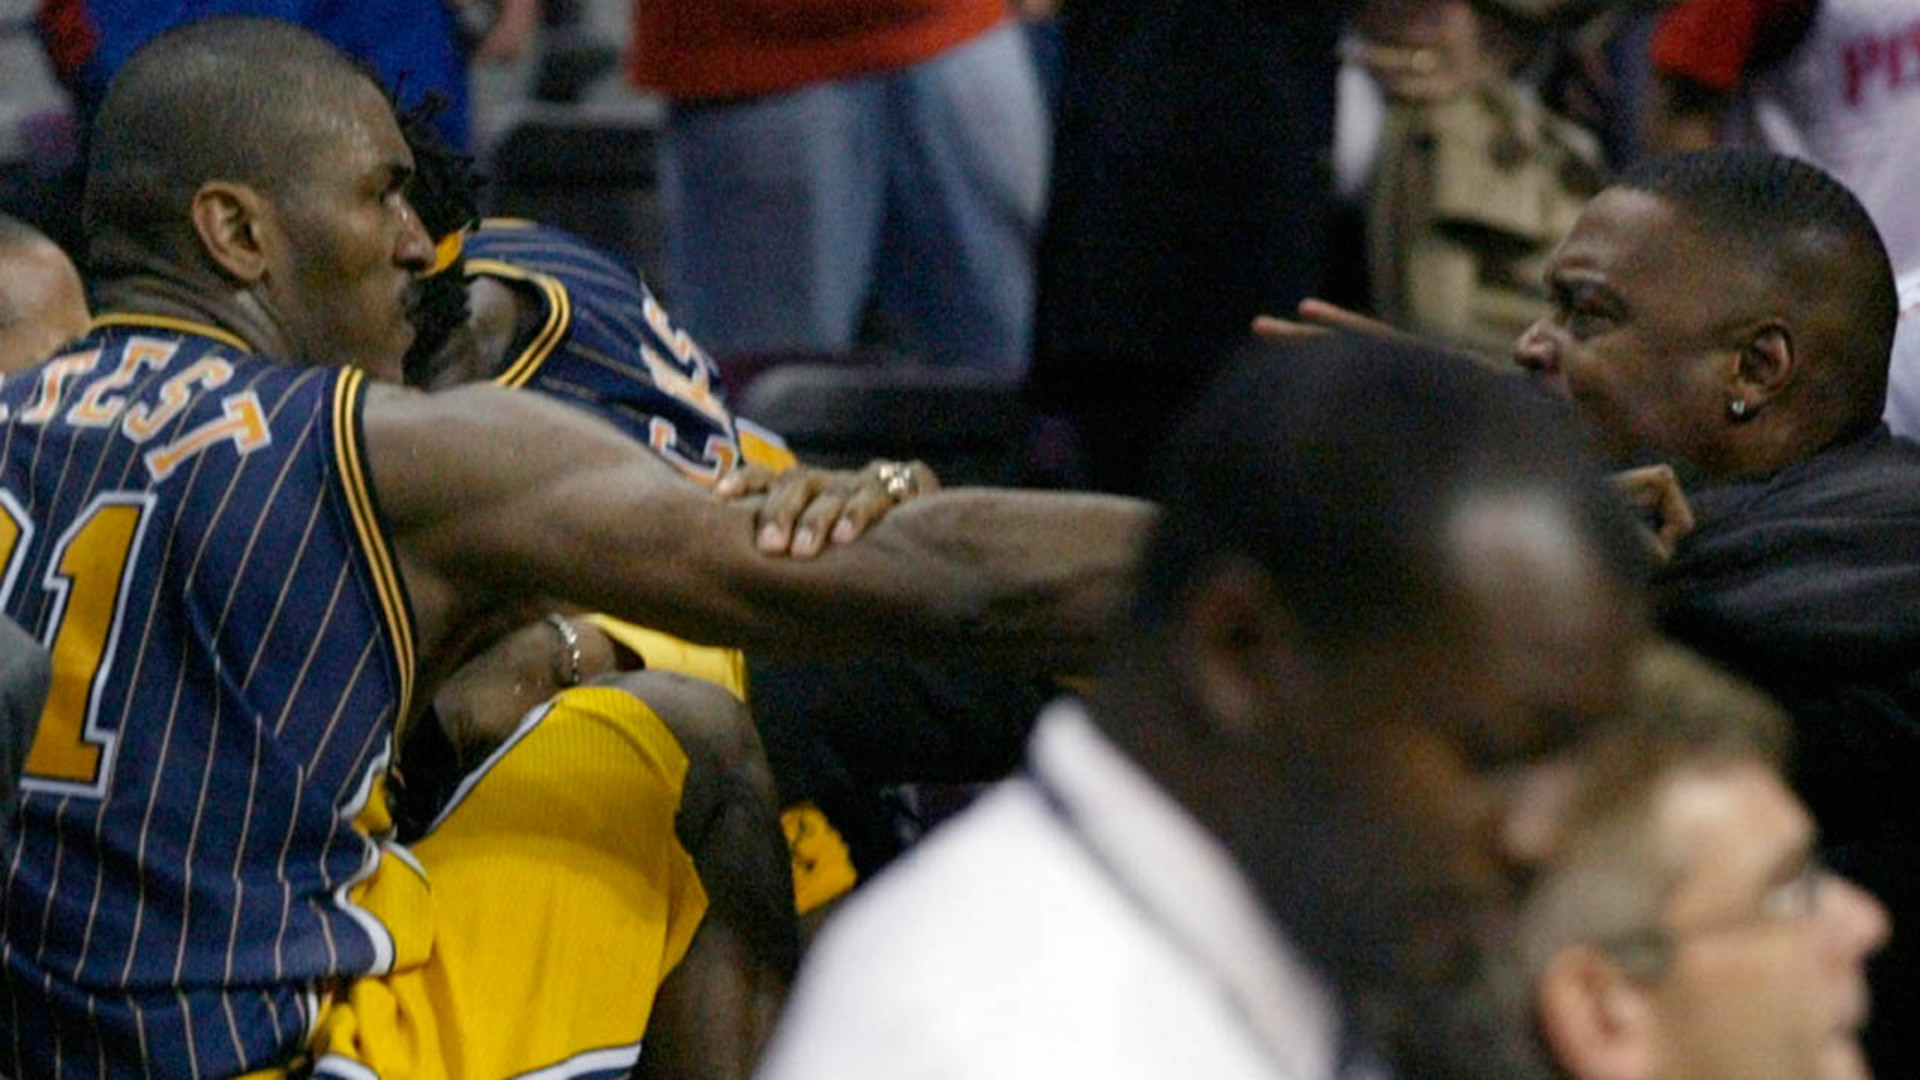 Top 5 Times Athletes Got into FIGHTS with Fans